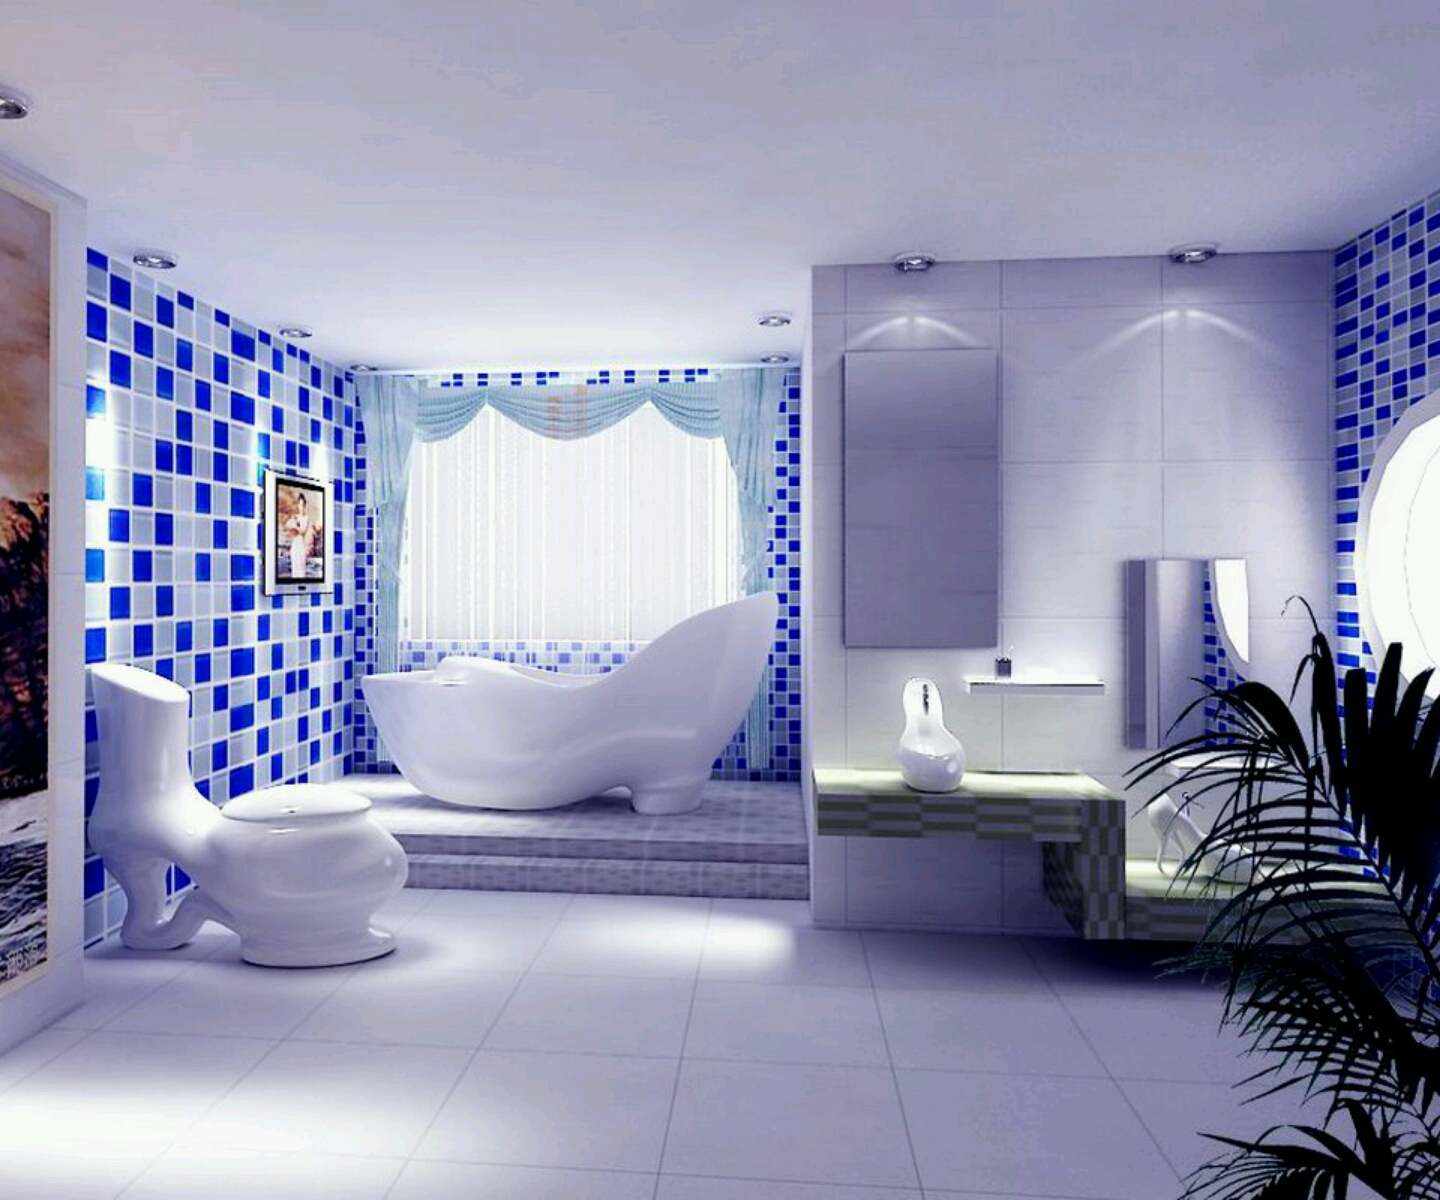 New home designs latest ultra modern washroom designs ideas for Stylish home decor